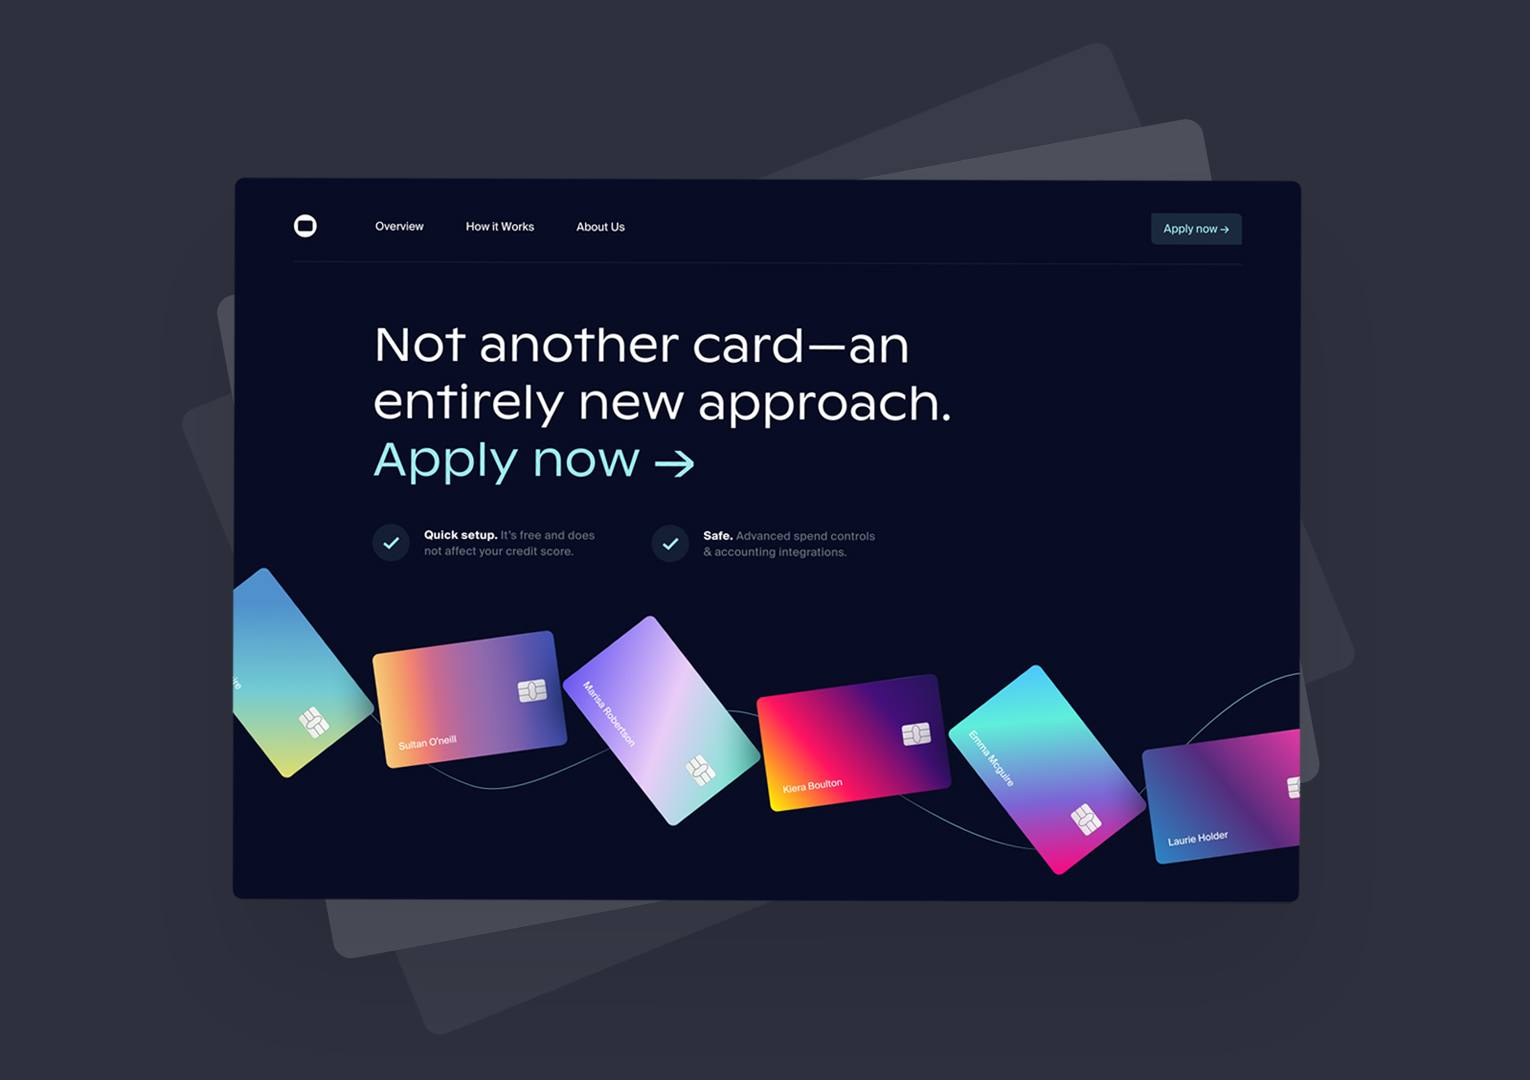 20 Examples of Gradient use in Interface Design